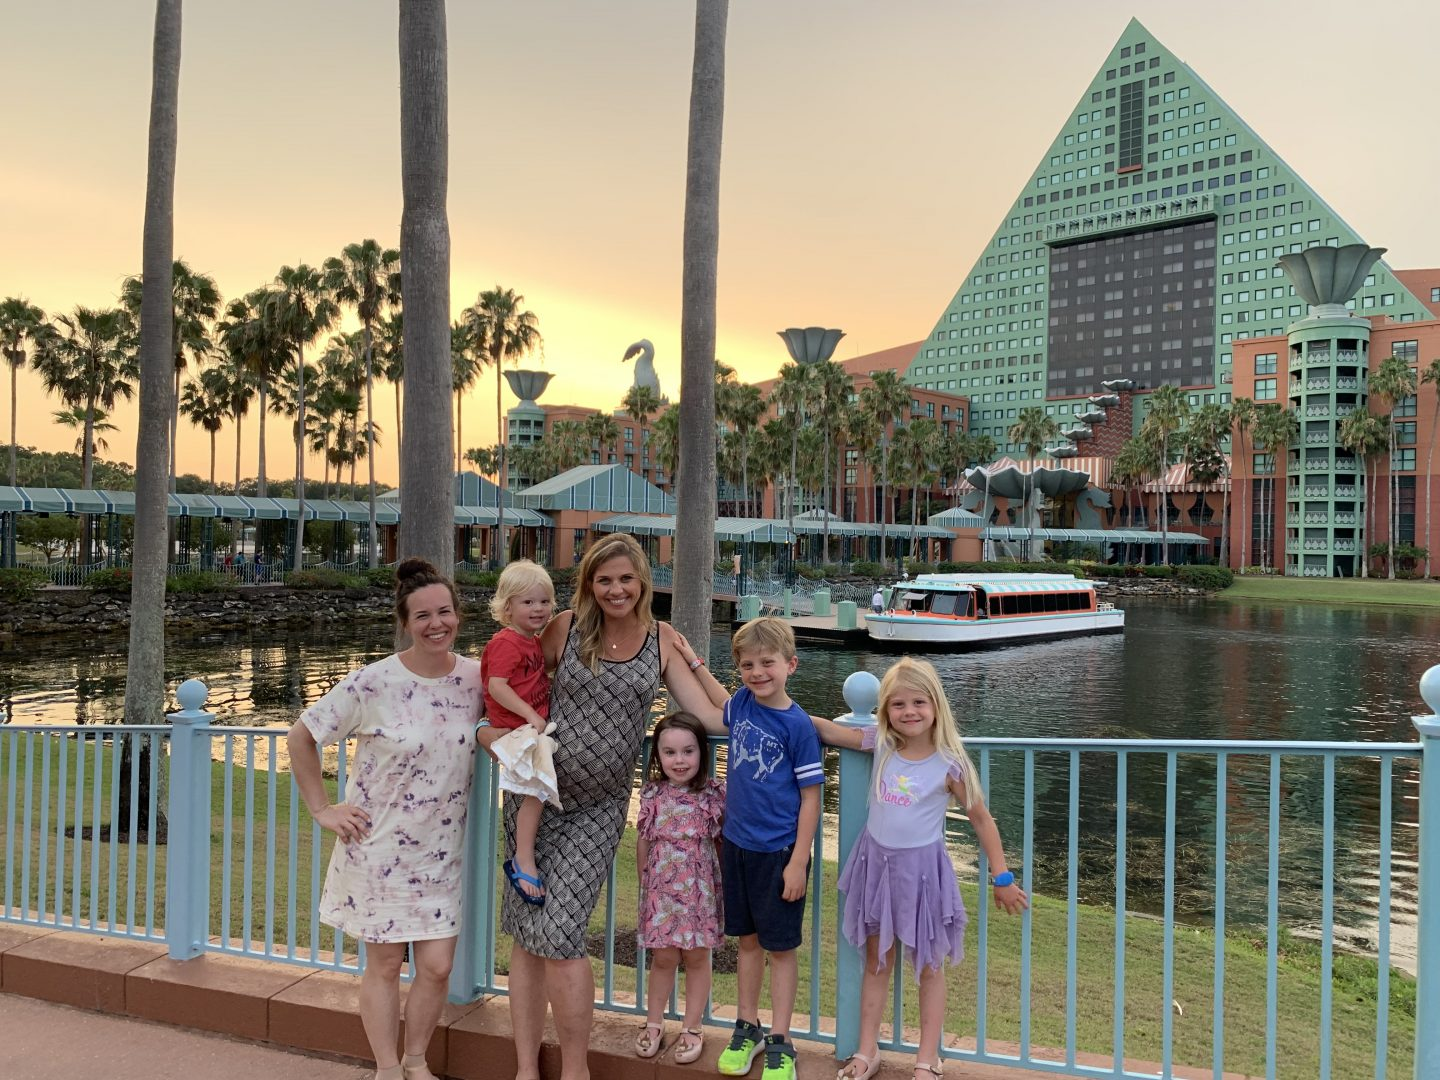 5 Reasons Why We Love Staying at Walt Disney's Swan & Dolphin Resorts